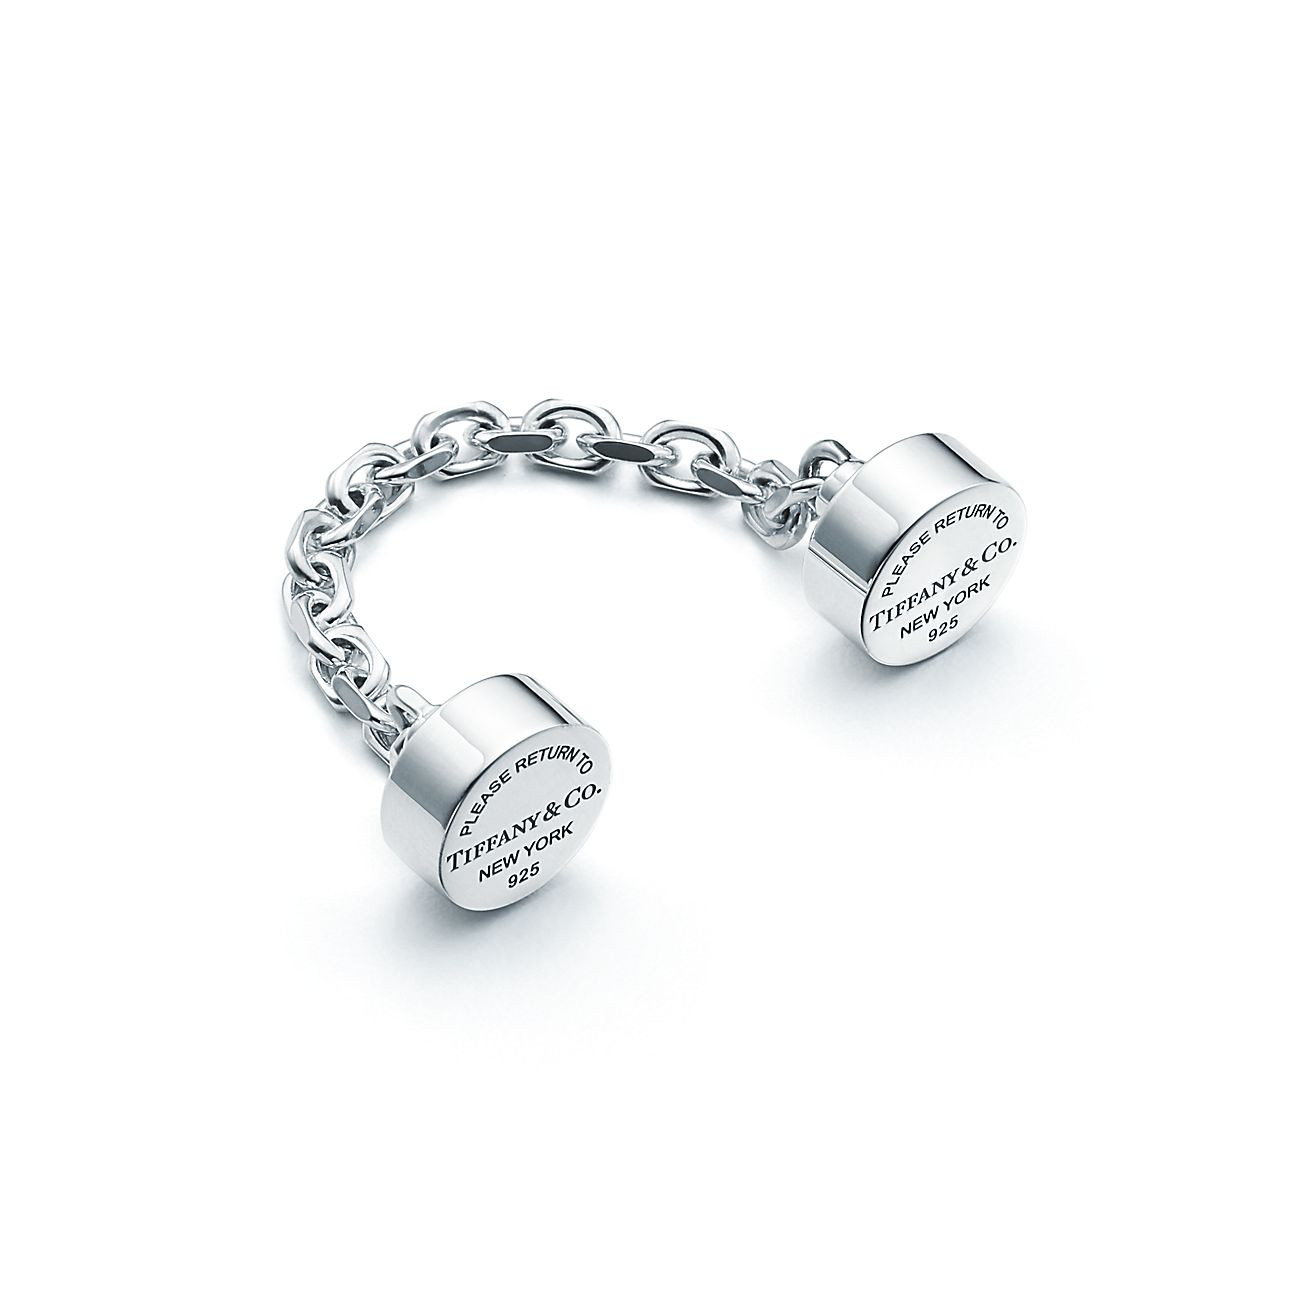 return to 174 chain key ring in sterling silver